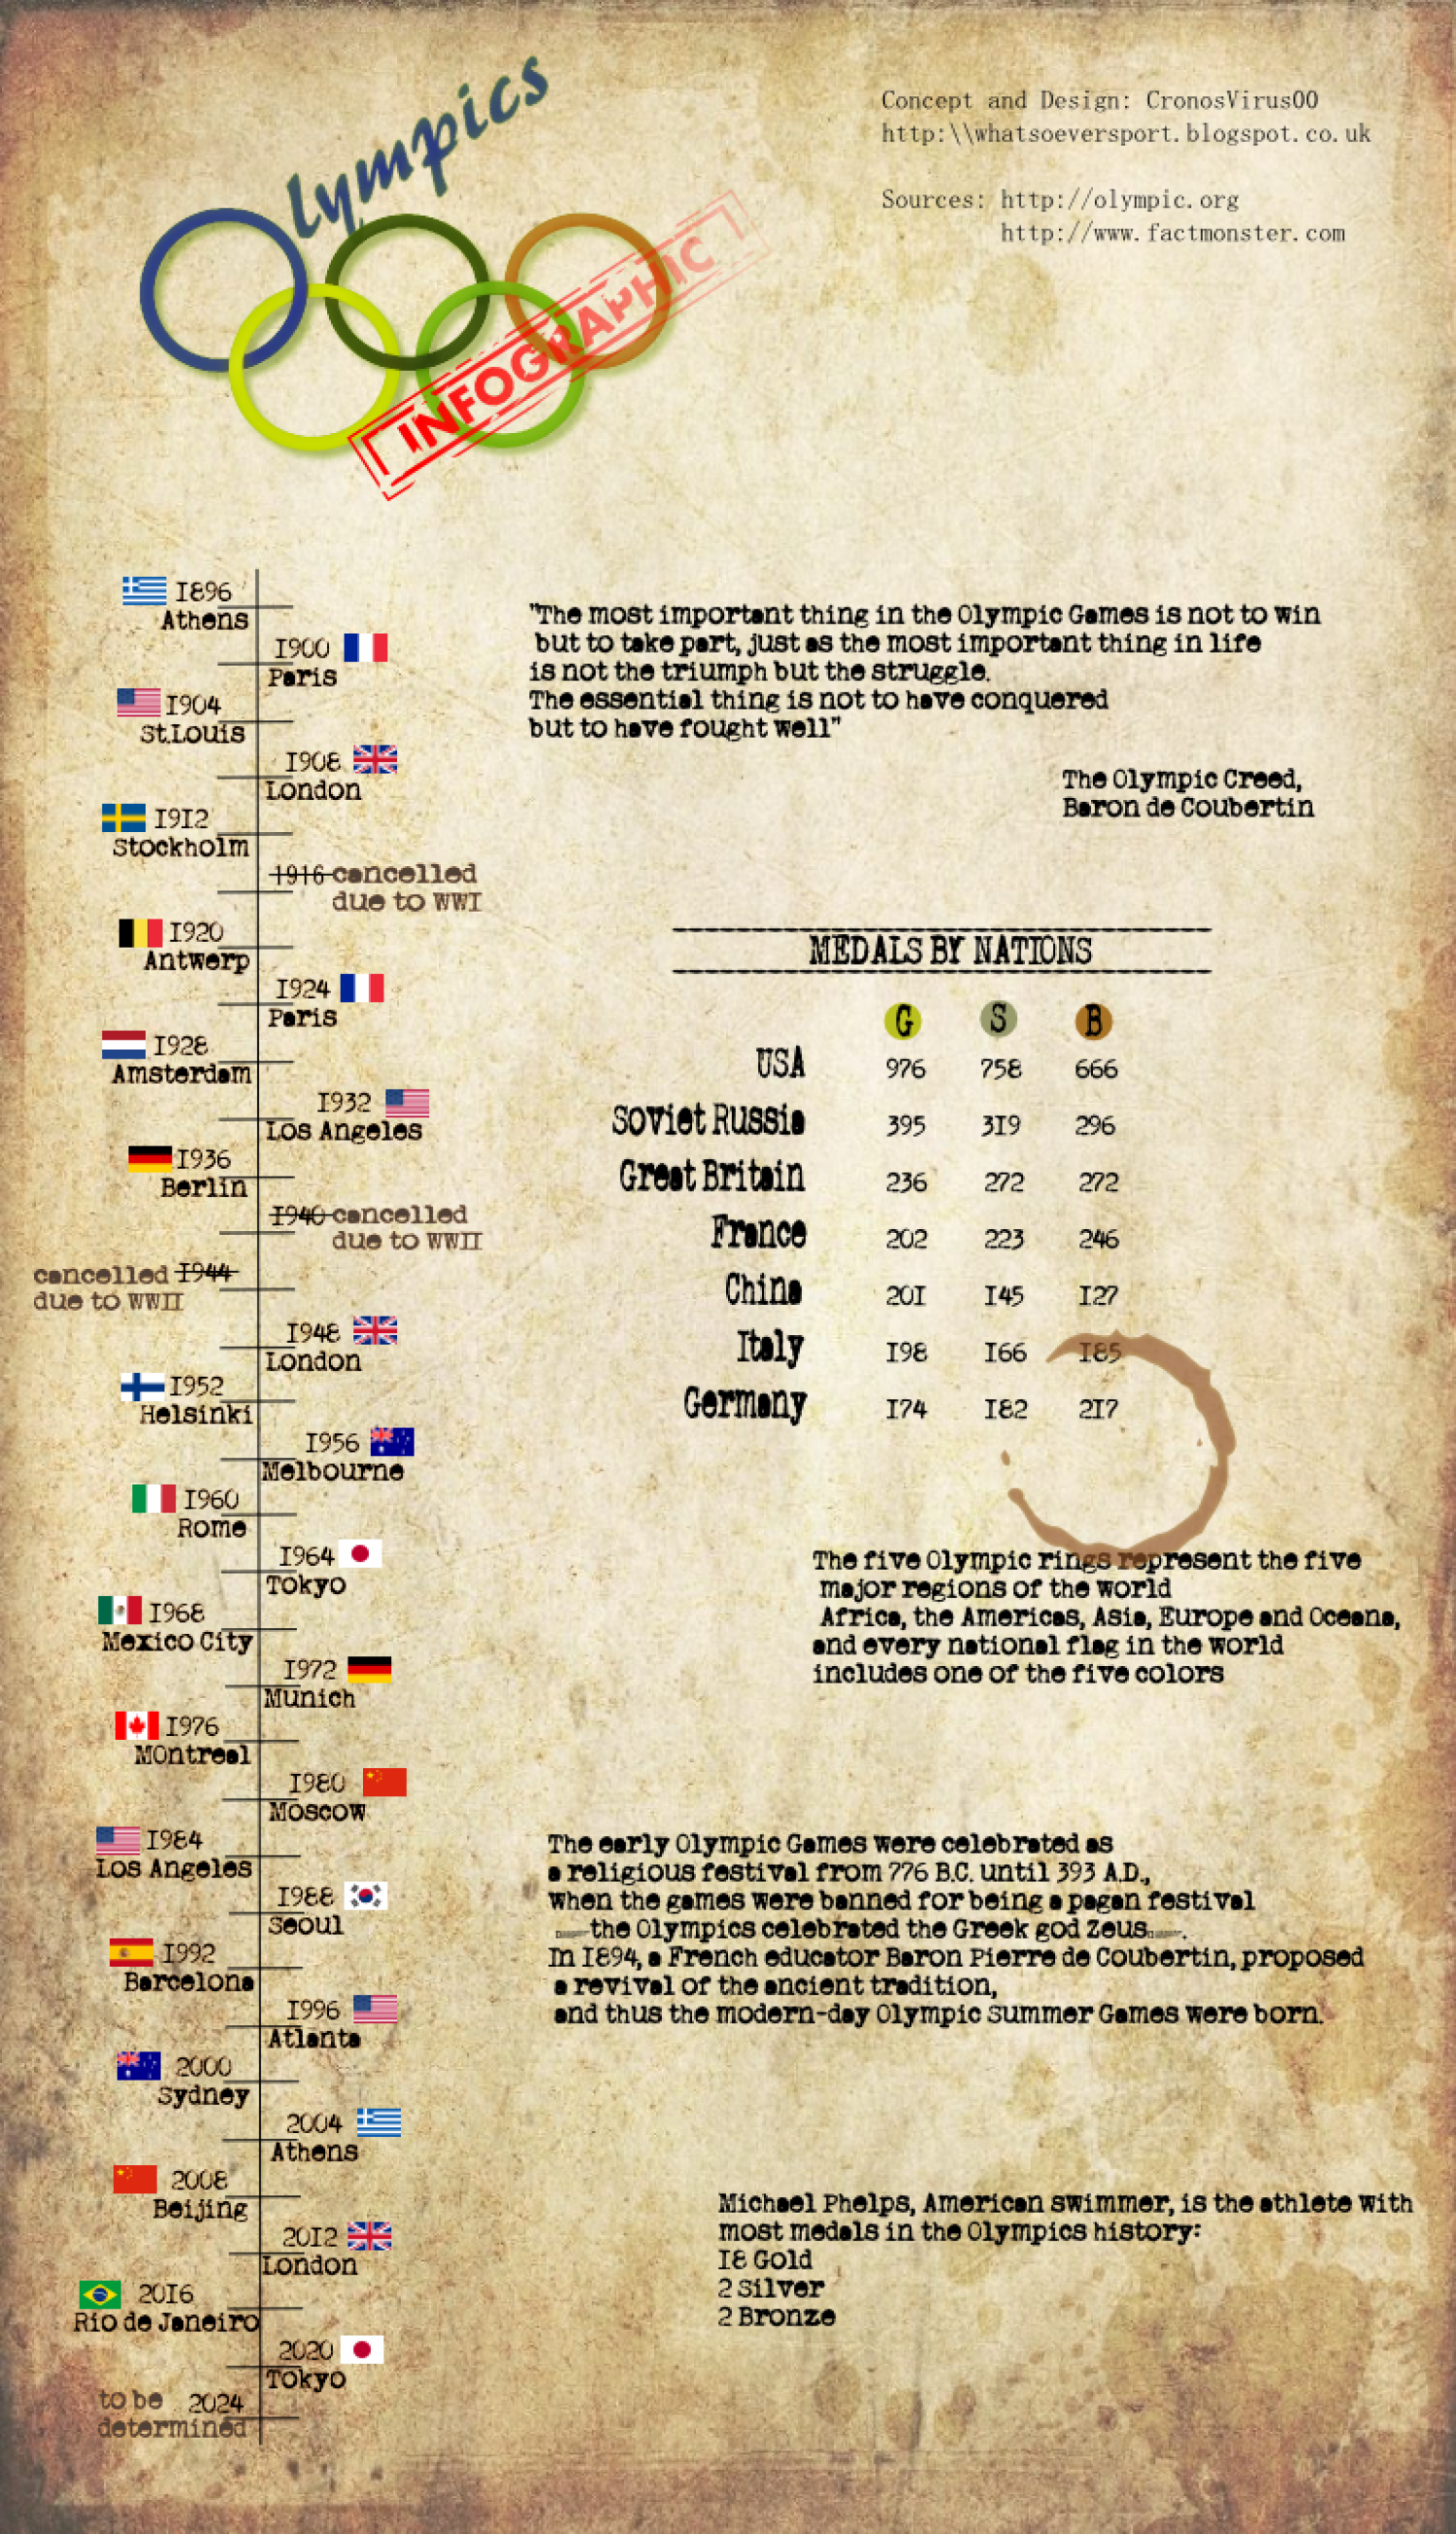 Olympic Games - Facts and Stats Infographic